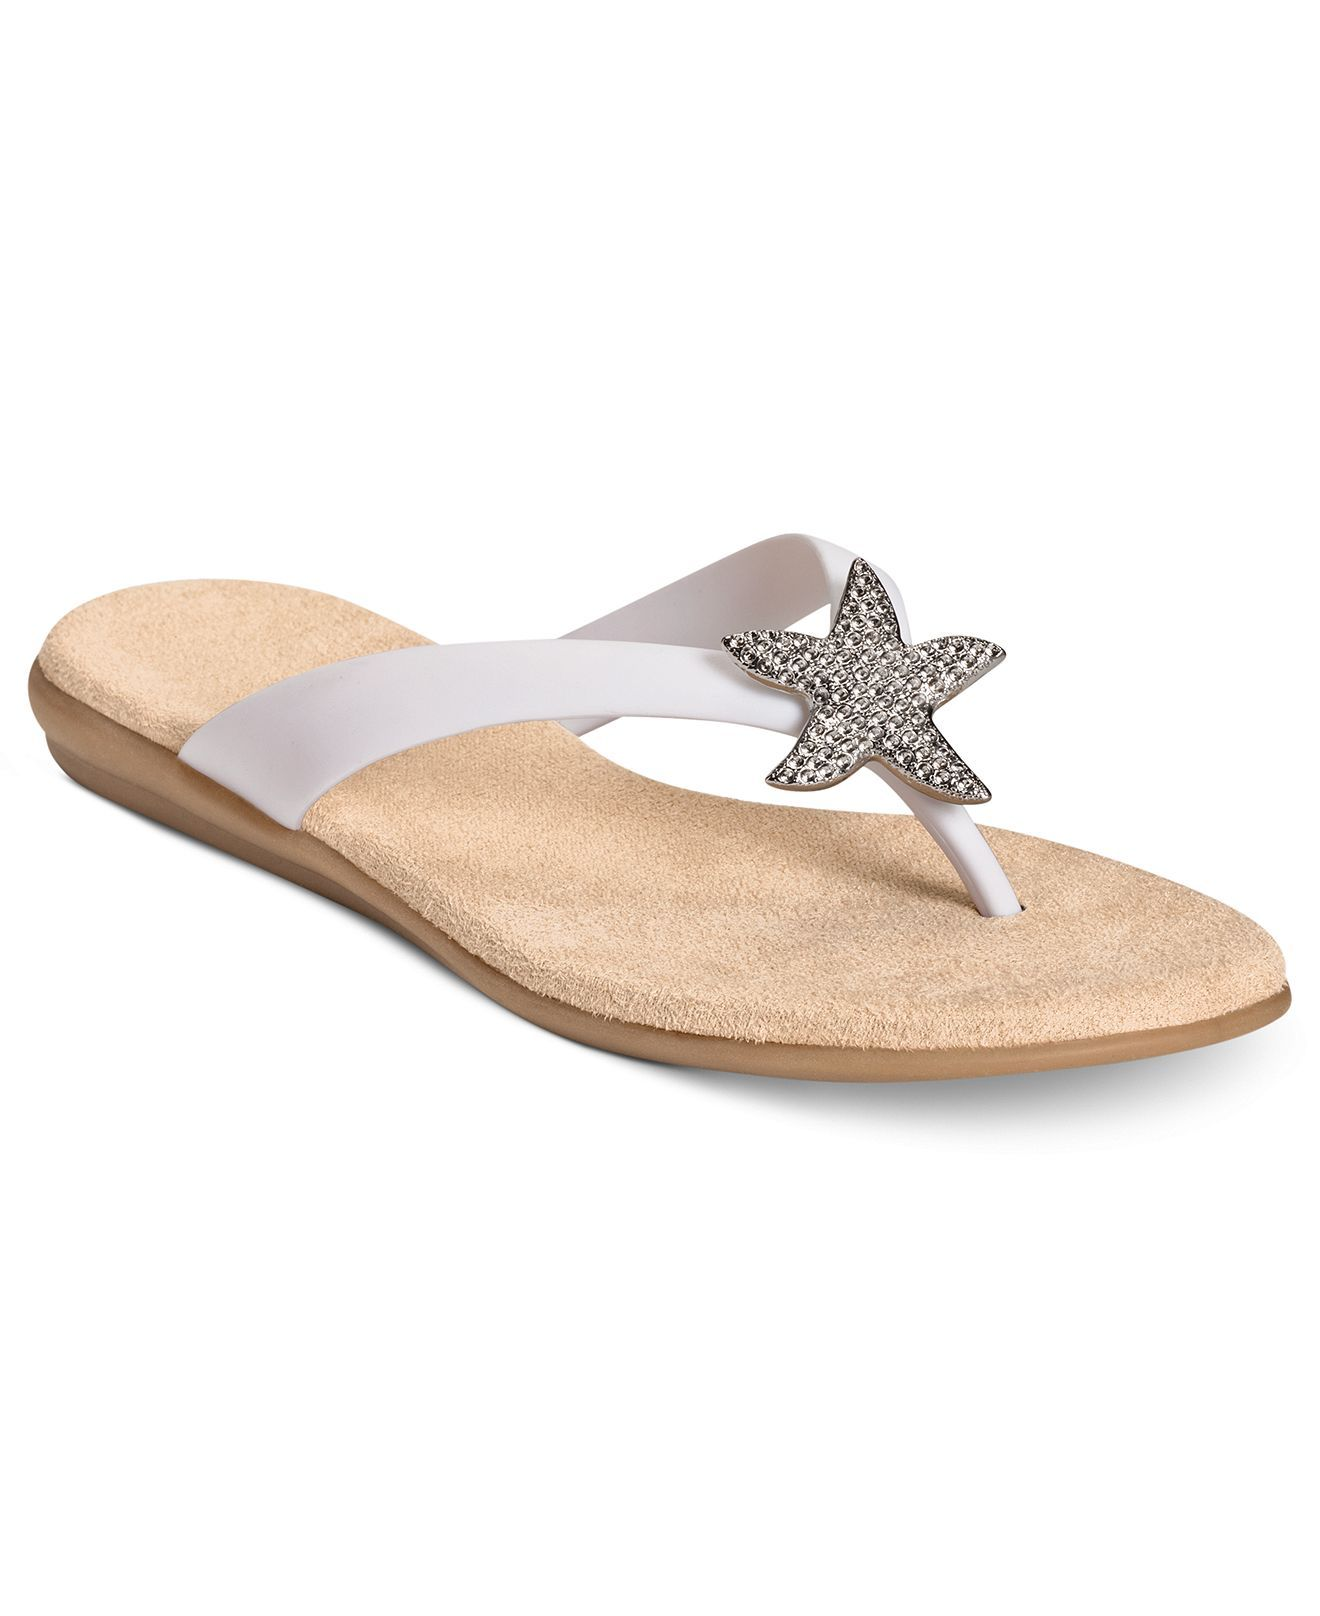 Aerosoles Beach Chlub Flat Thong Sandals - Aerosoles Sandals - Shoes -  Macy's